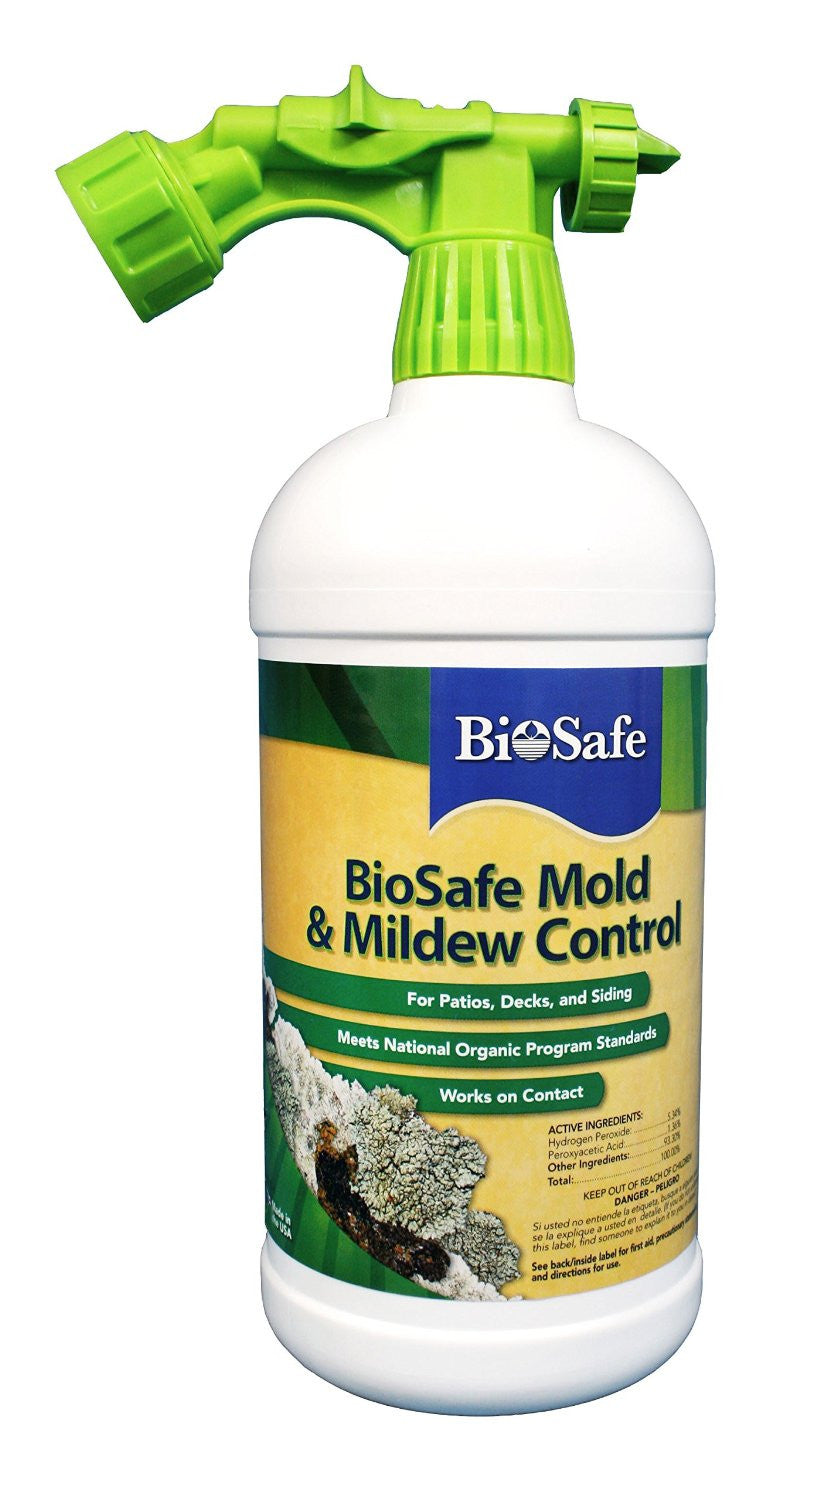 BioSafe Systems Mold & Mildew Control Spray, 32 Ounces